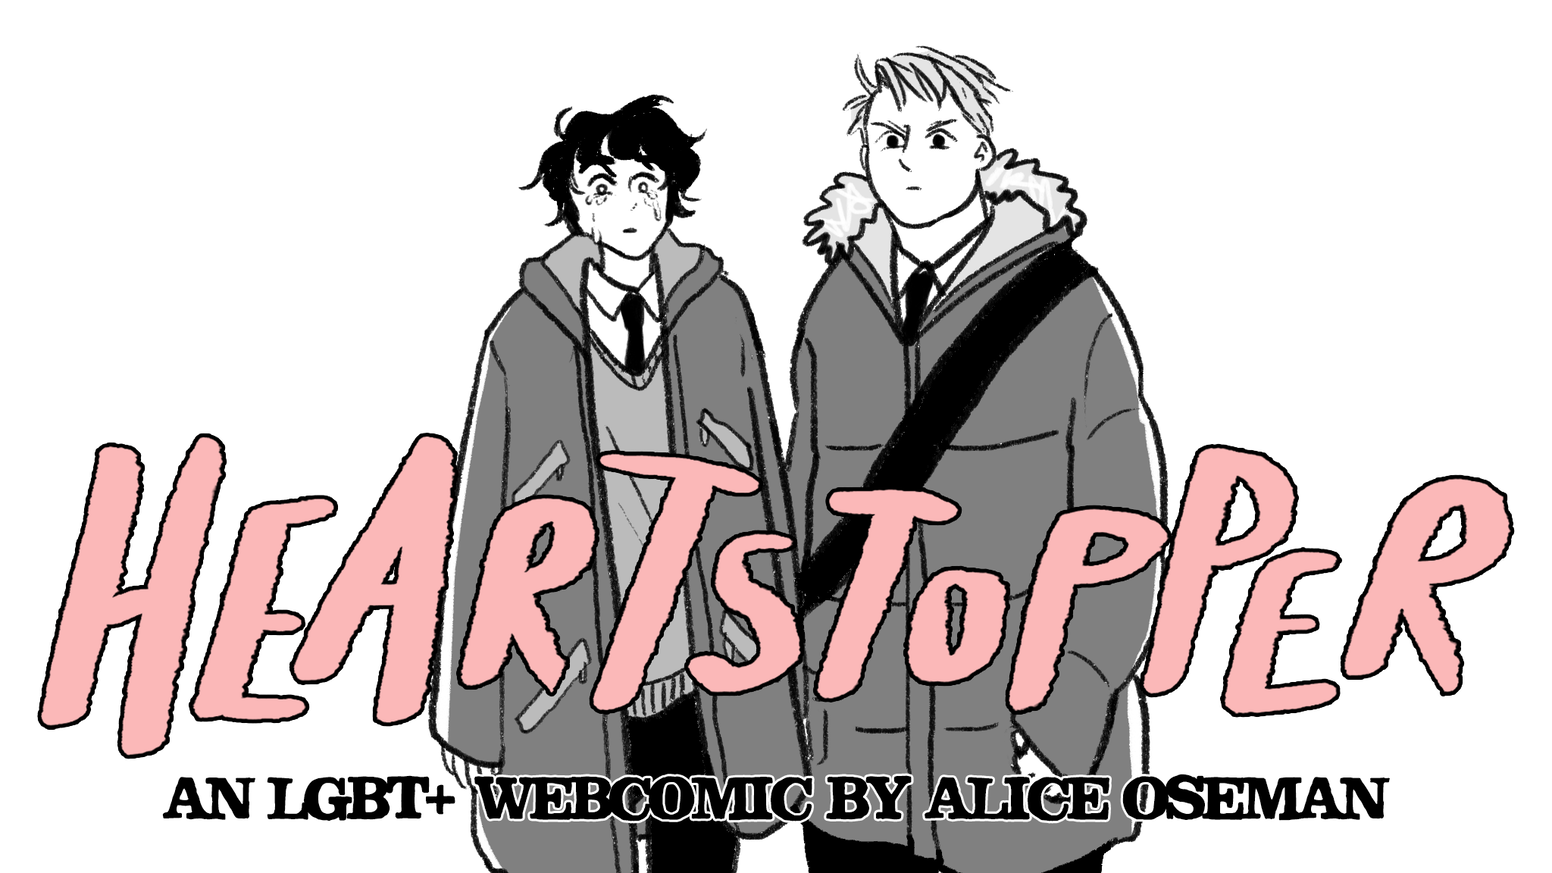 A gay nerd, a rugby lad, and a whole lot of drama. The first volume of Alice Oseman's LGBT+ YA romance webcomic, HEARTSTOPPER.